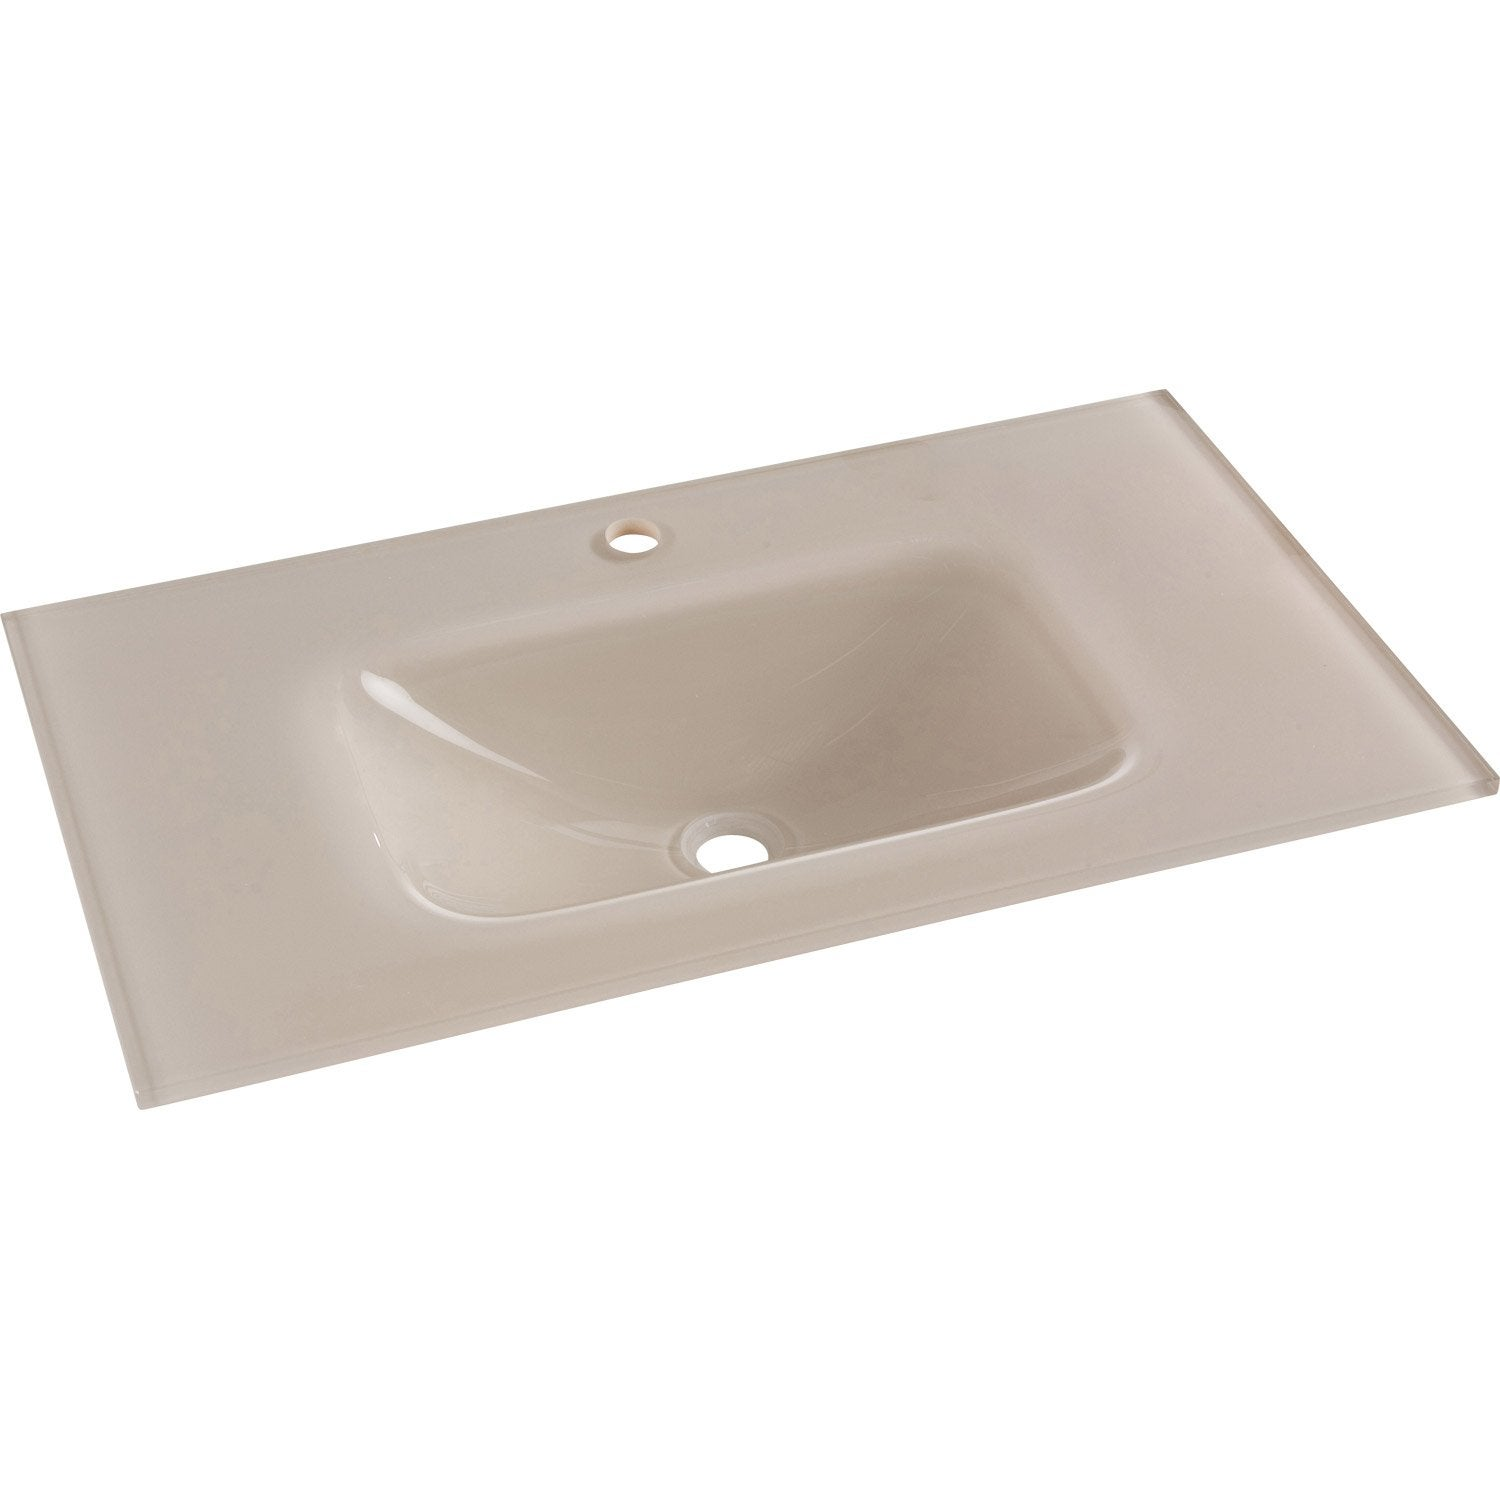 Plan simple vasque opale verre tremp beige cm leroy merlin - Verre trempe leroy merlin ...